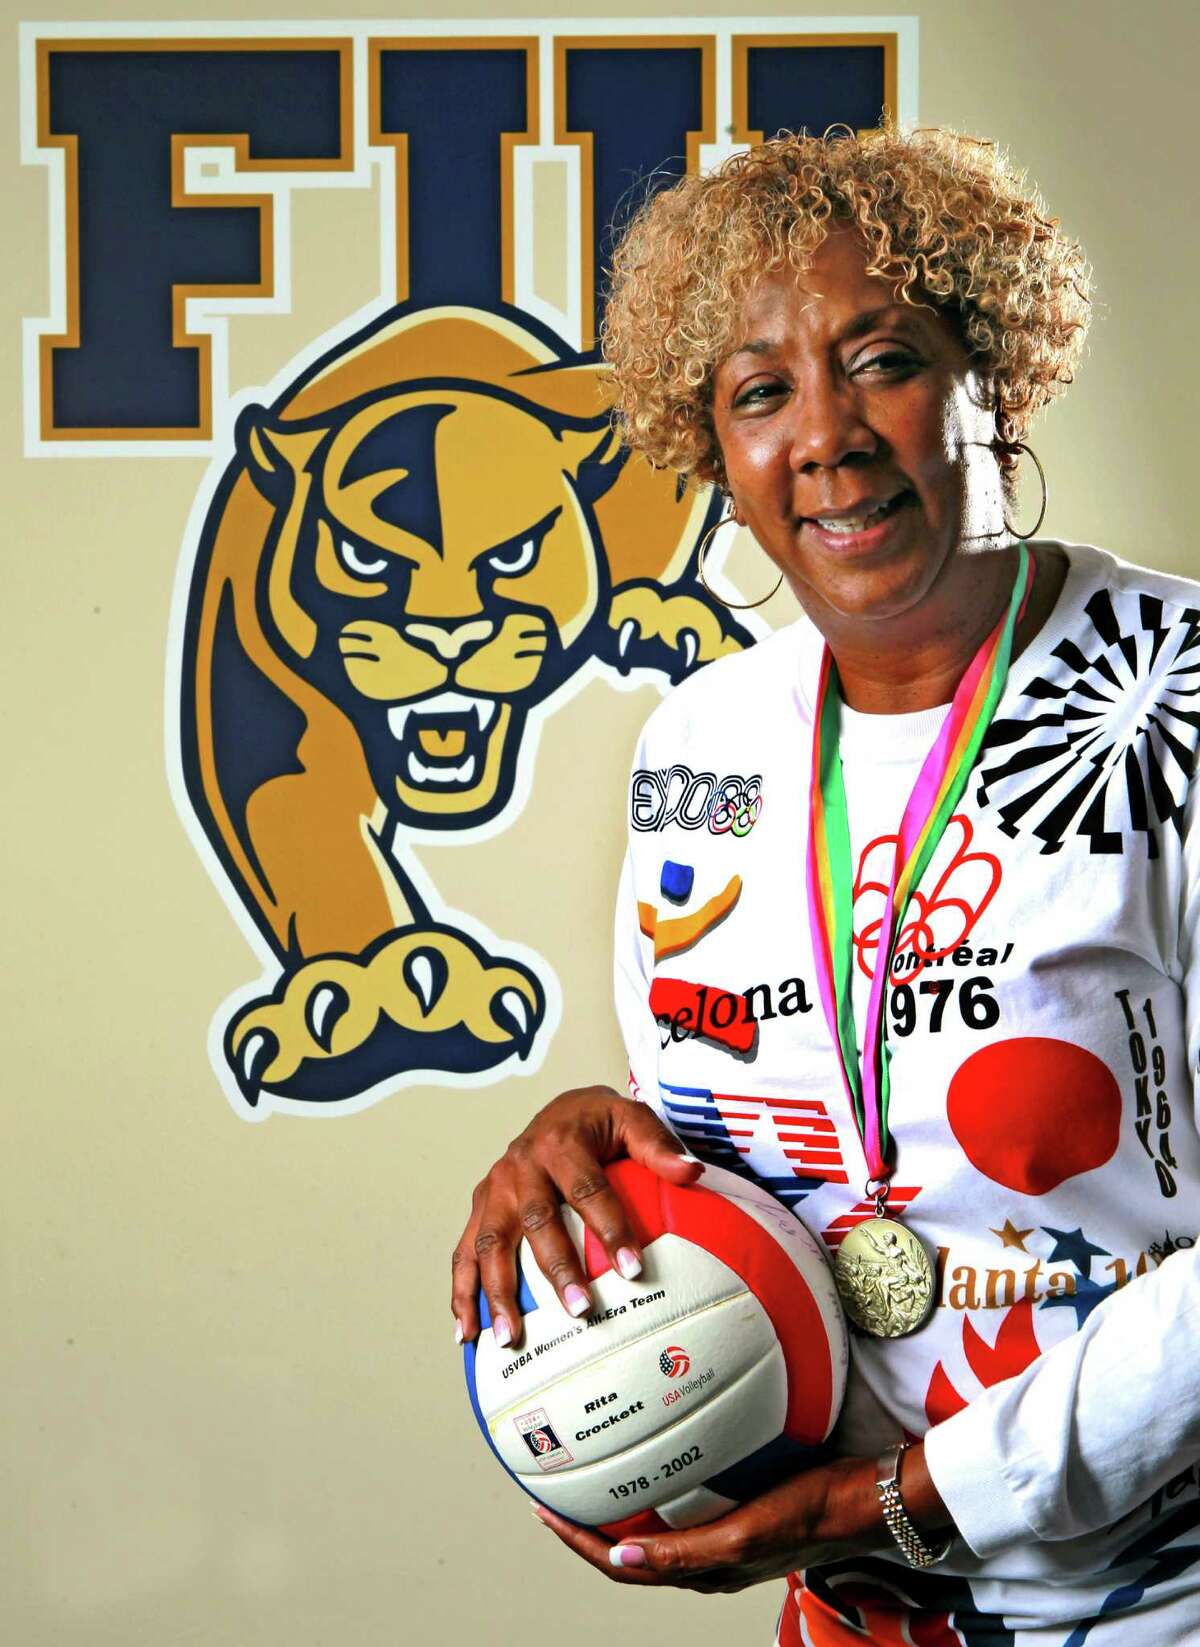 Rita Buck-Crockett, pictured at the FIU campus in Miami Dade County in June 2012, is one of the top nine area athletes San Antonio has produced in the Title IX era. Buck was named the first sand volleyball coach at FIU.